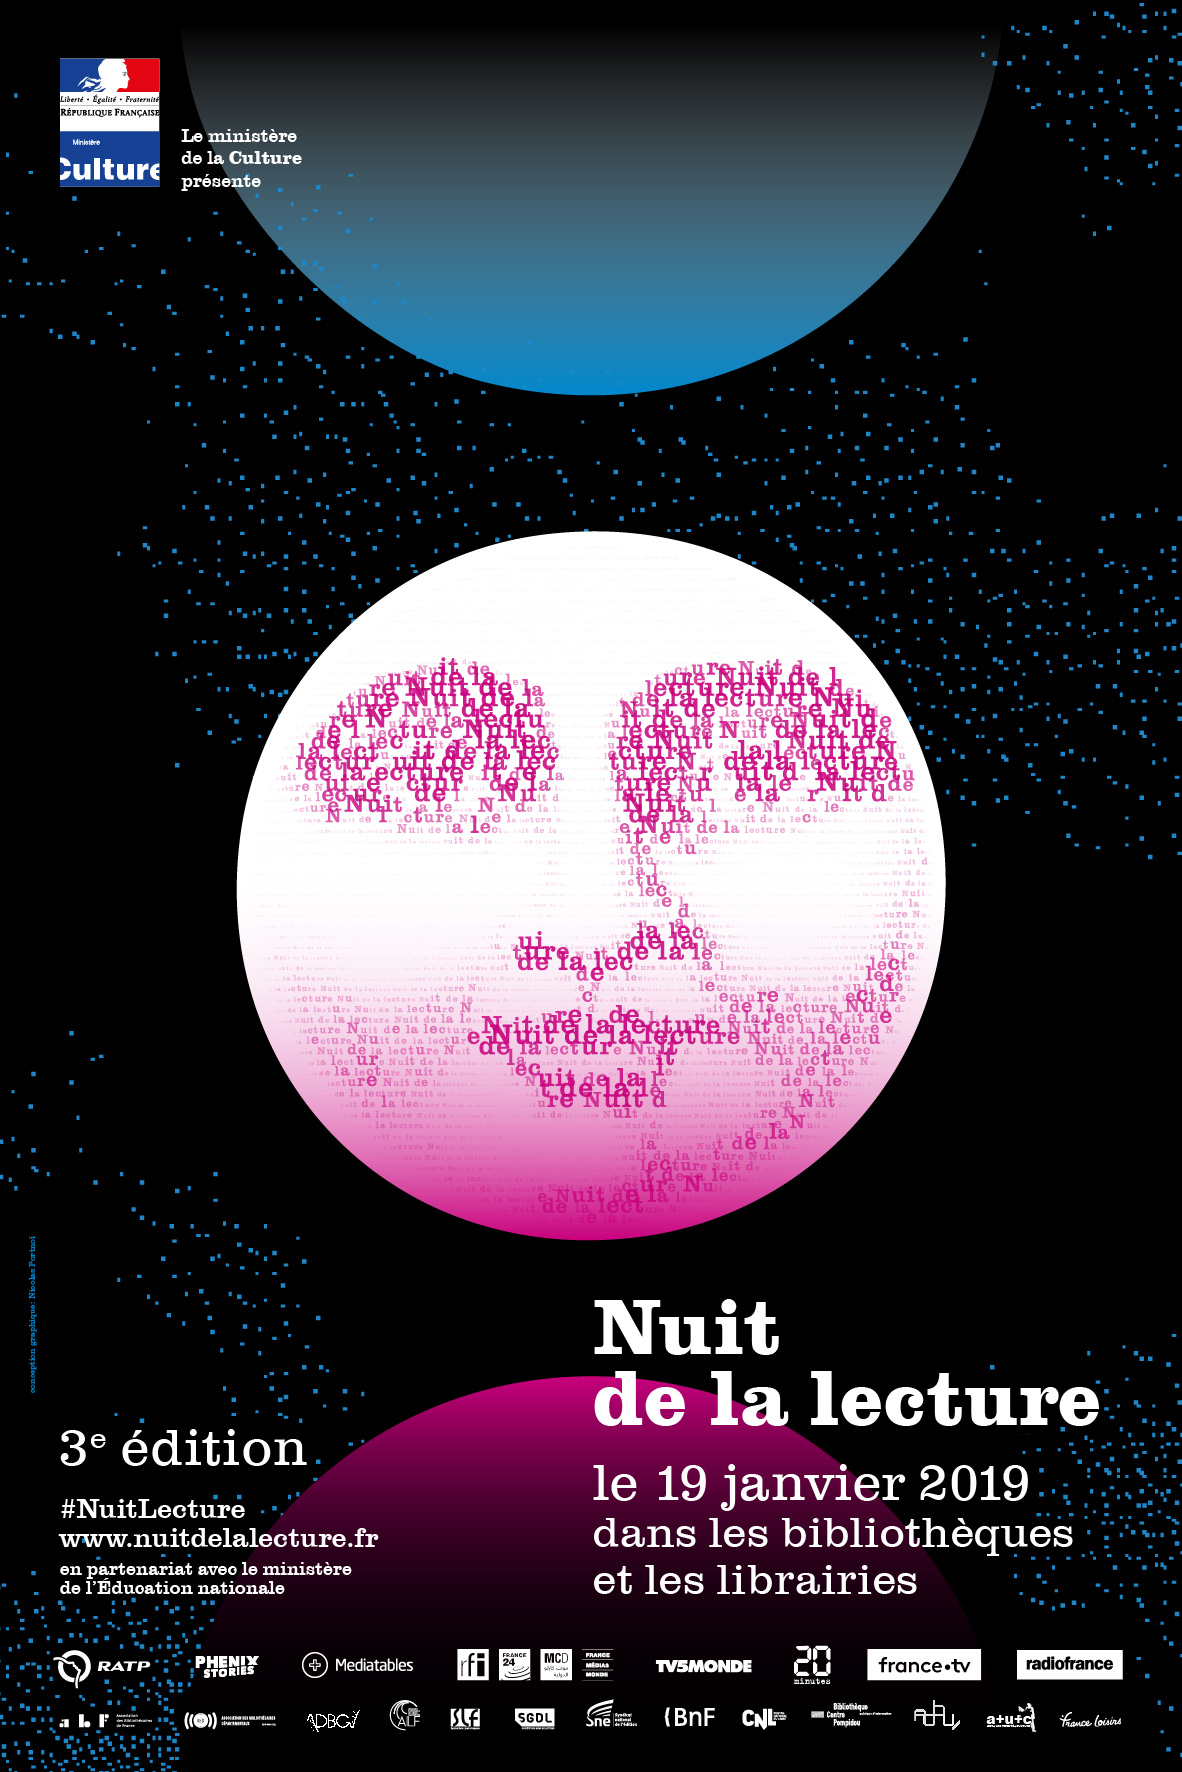 nuitlecture2019_affiche.jpg